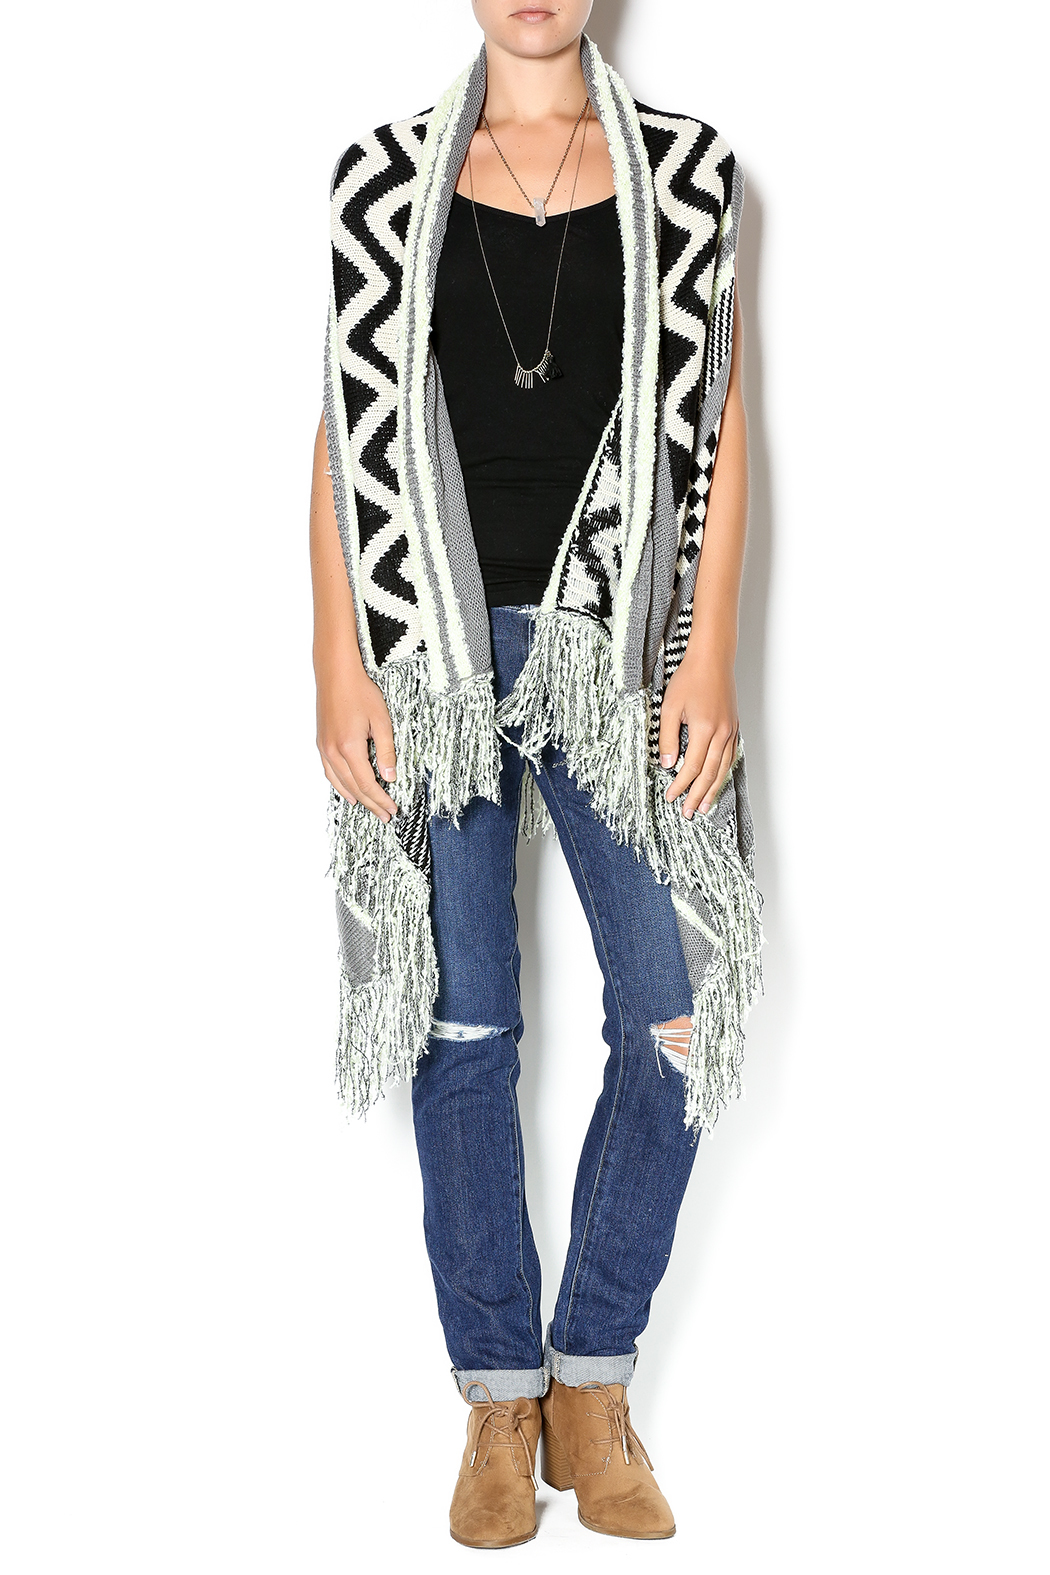 Double Zero Sleeveless Open Cardigan - Front Full Image